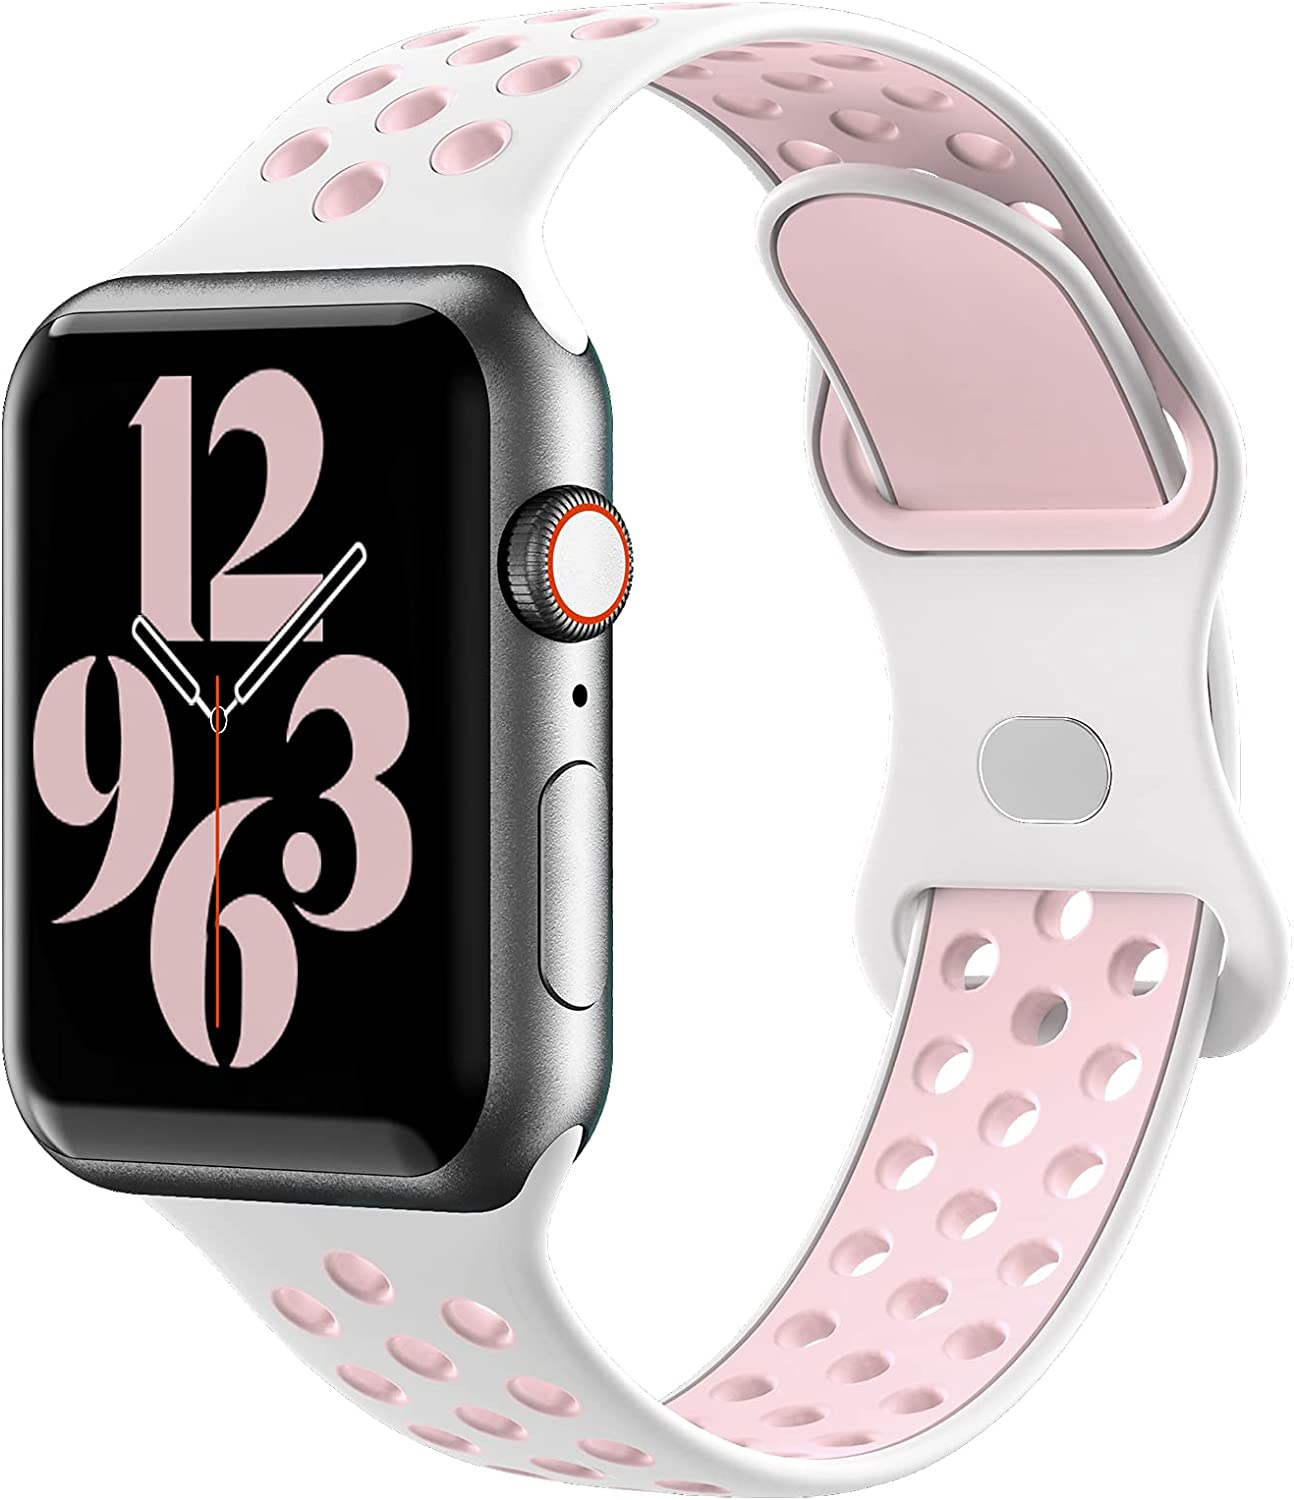 Gleiven Compatible with Apple Watch Band 38mm 40mm 42mm 44mm,Breathable Soft Silicone Sport Replacement Strap Women Men For iWatch Series 6/5/4/3/2/1/SE.